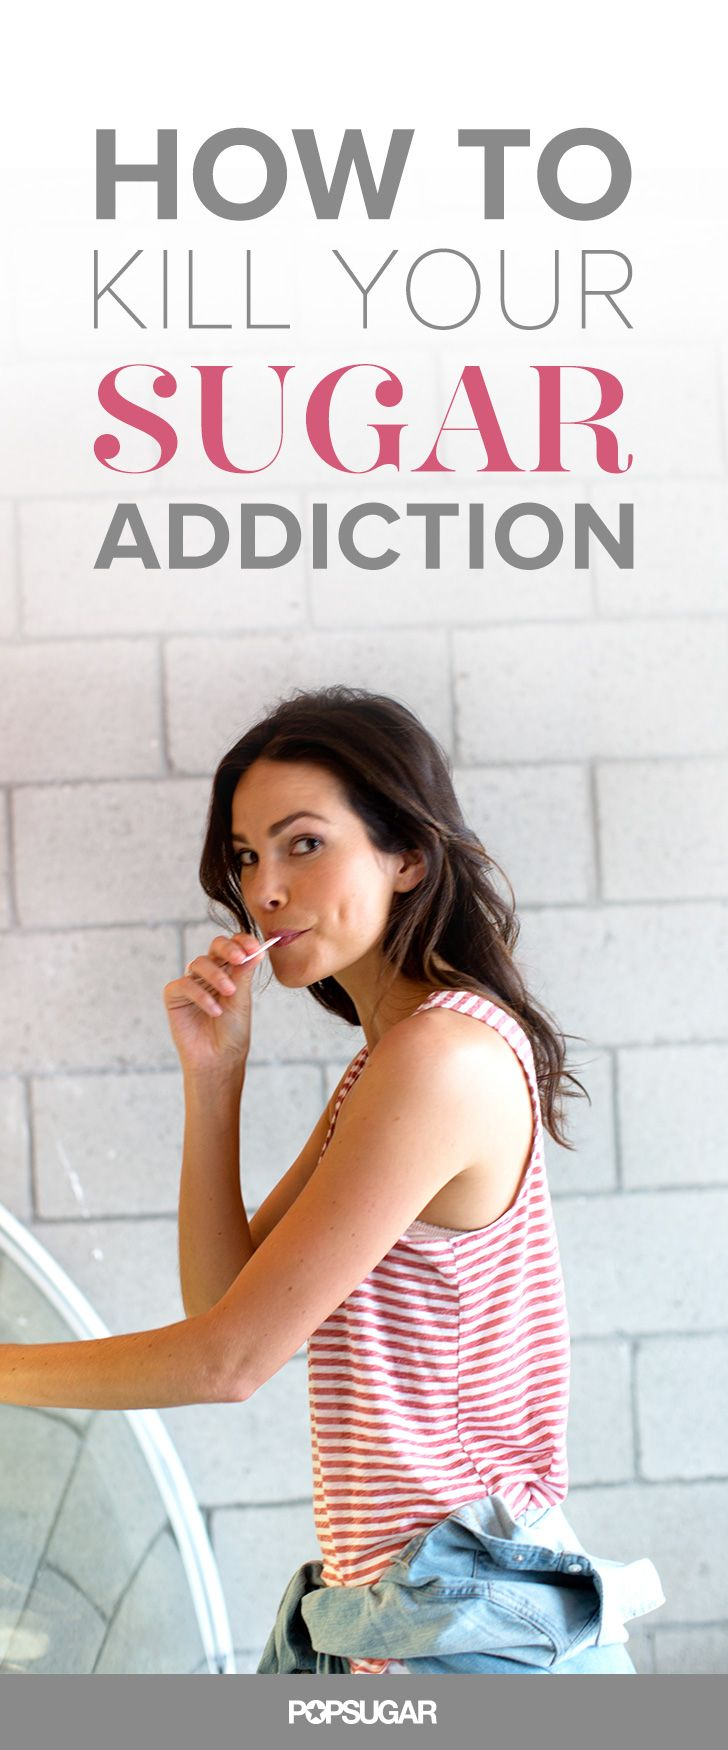 Expert tips on killing your sugar addiction, once and for all. These really work!